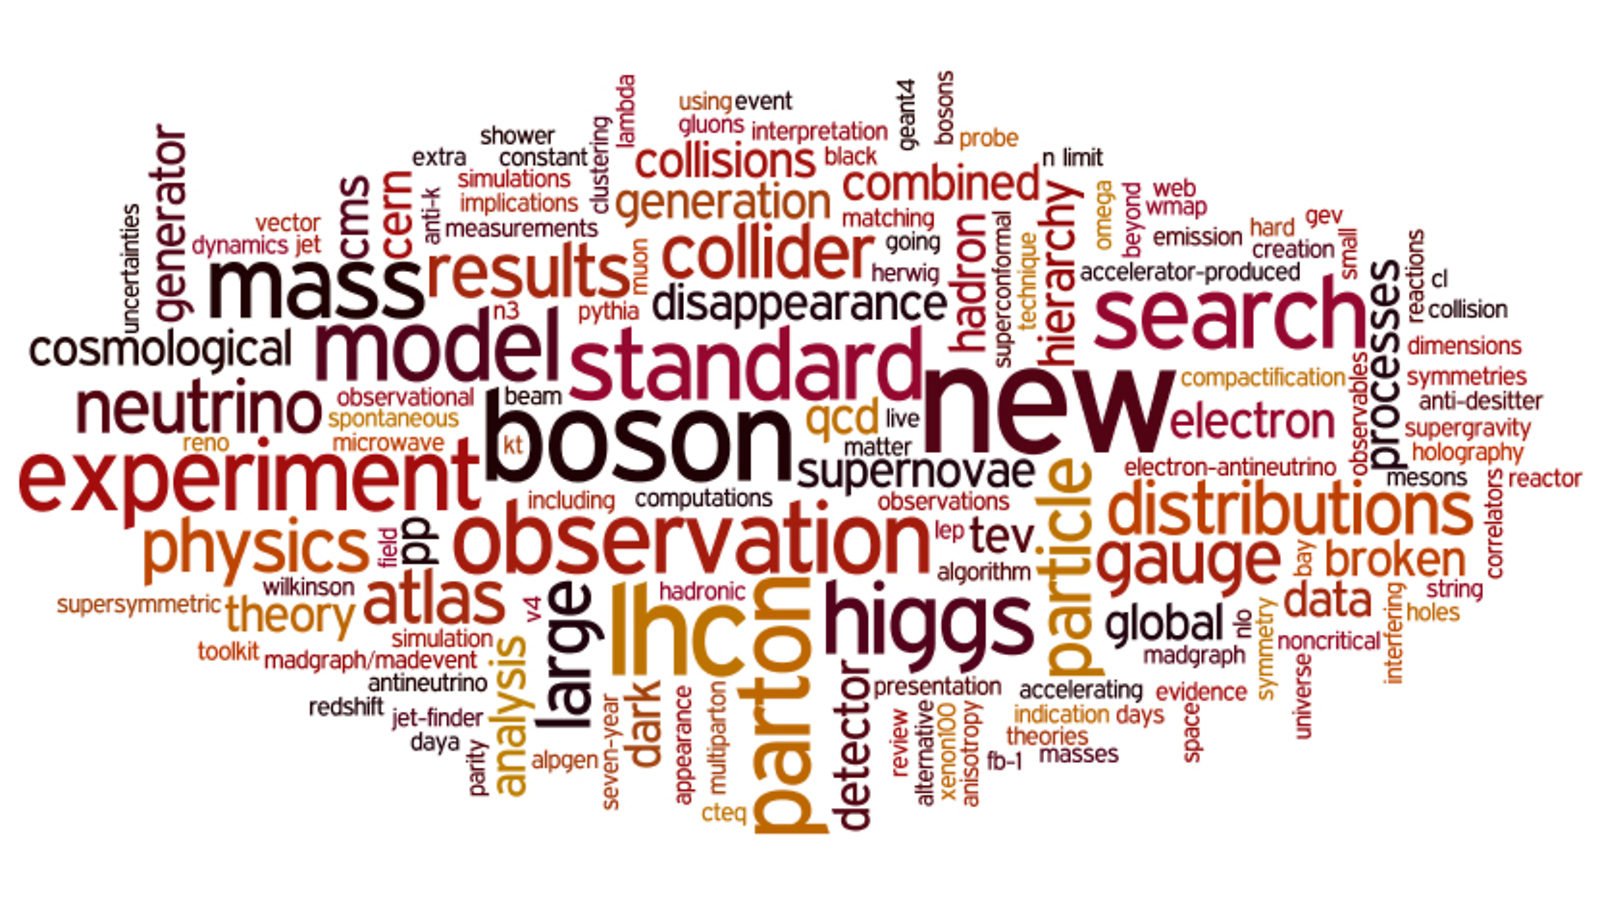 Image of 2012 INSPIRE top cited papers: word cloud